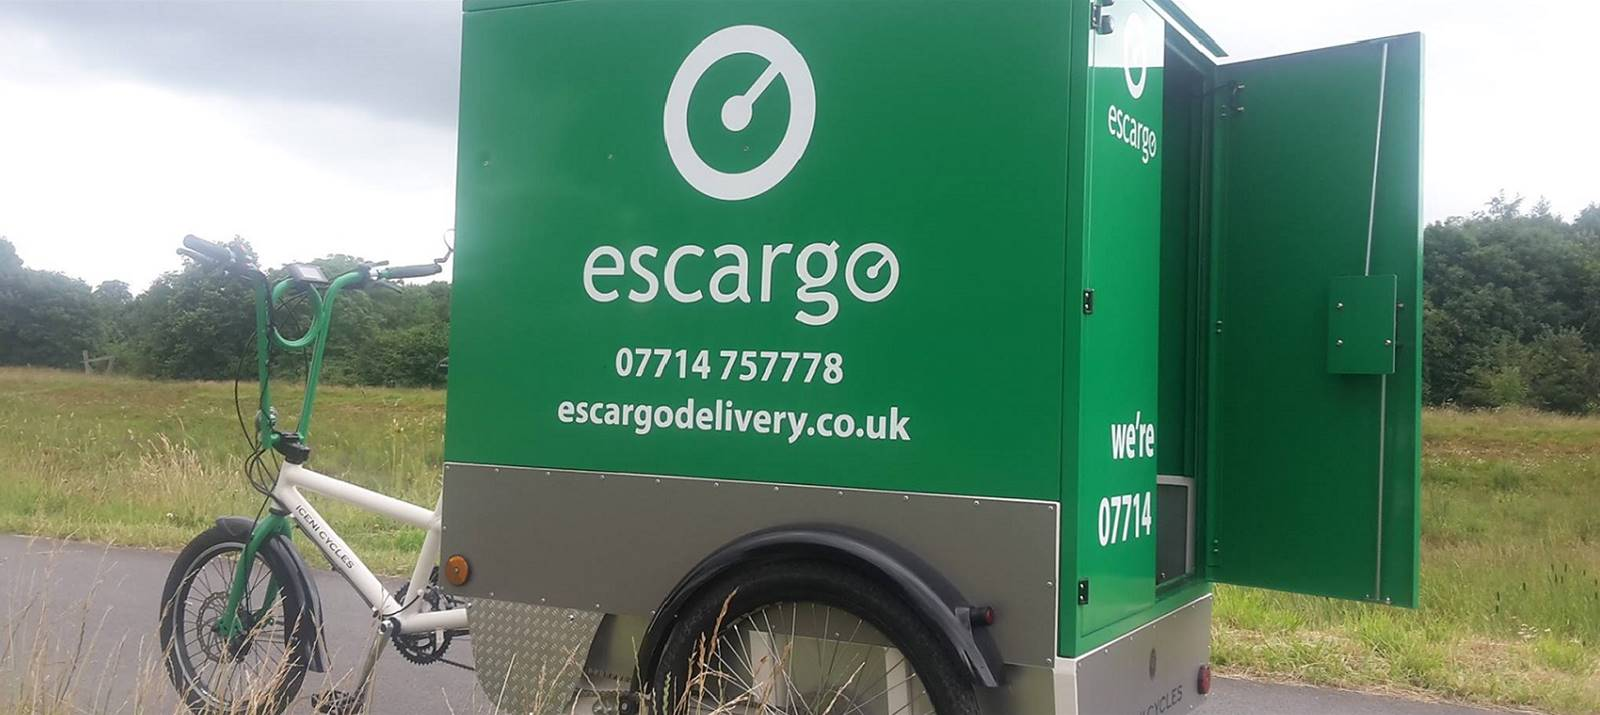 Escargo - delivery by electric bike